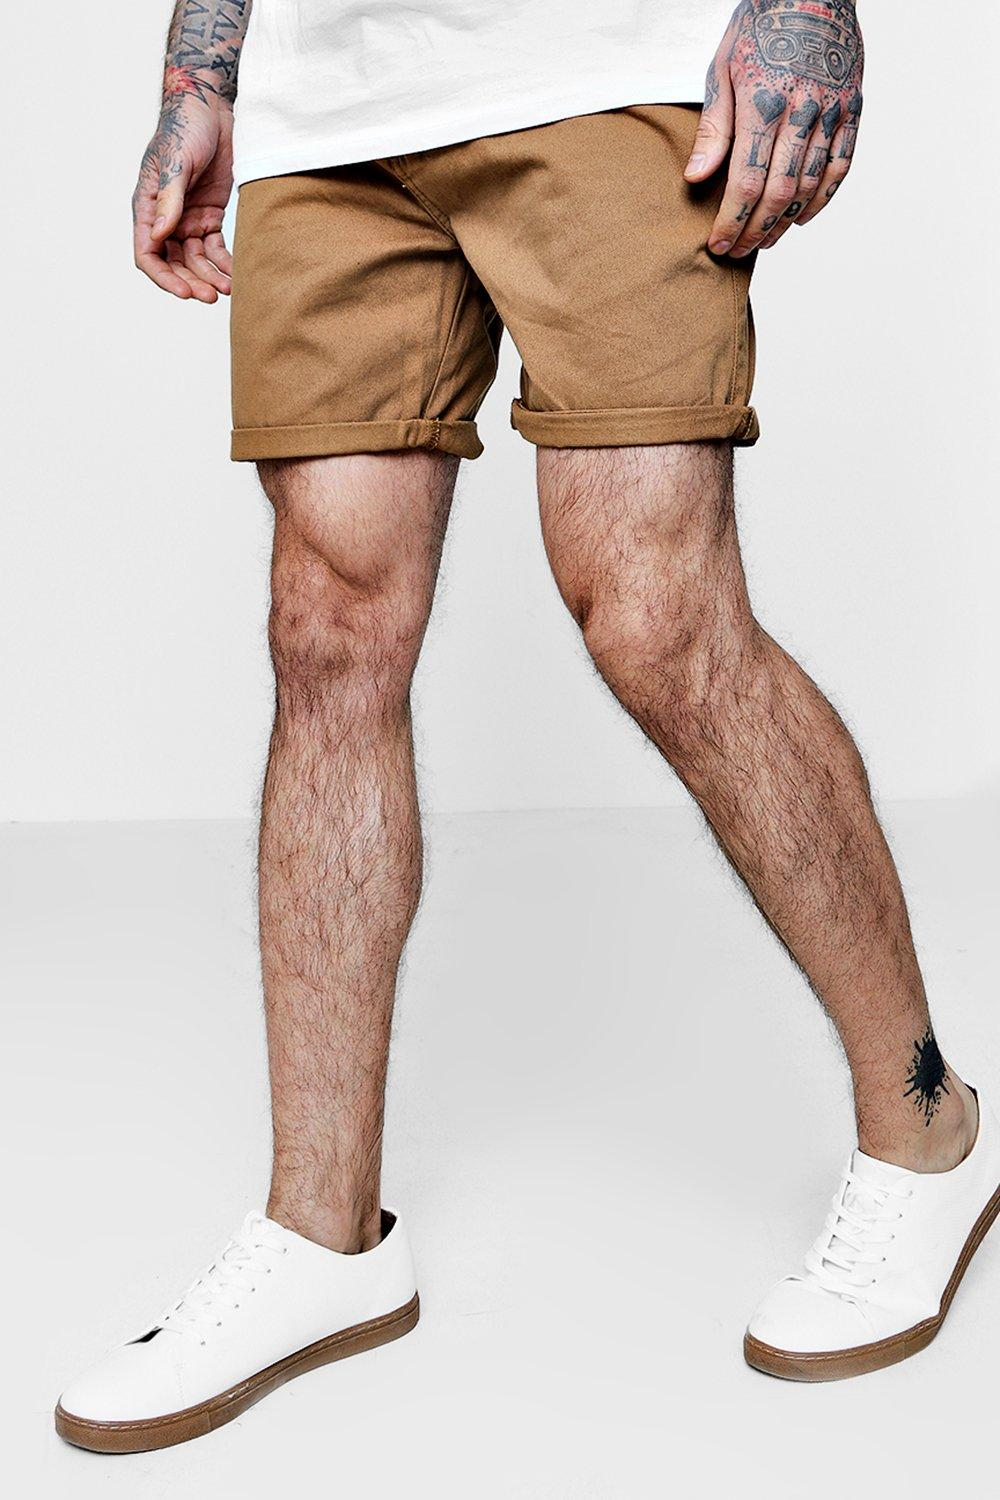 Chino Short tobacco Short Classic Chino tobacco Classic Classic OS1ExqS